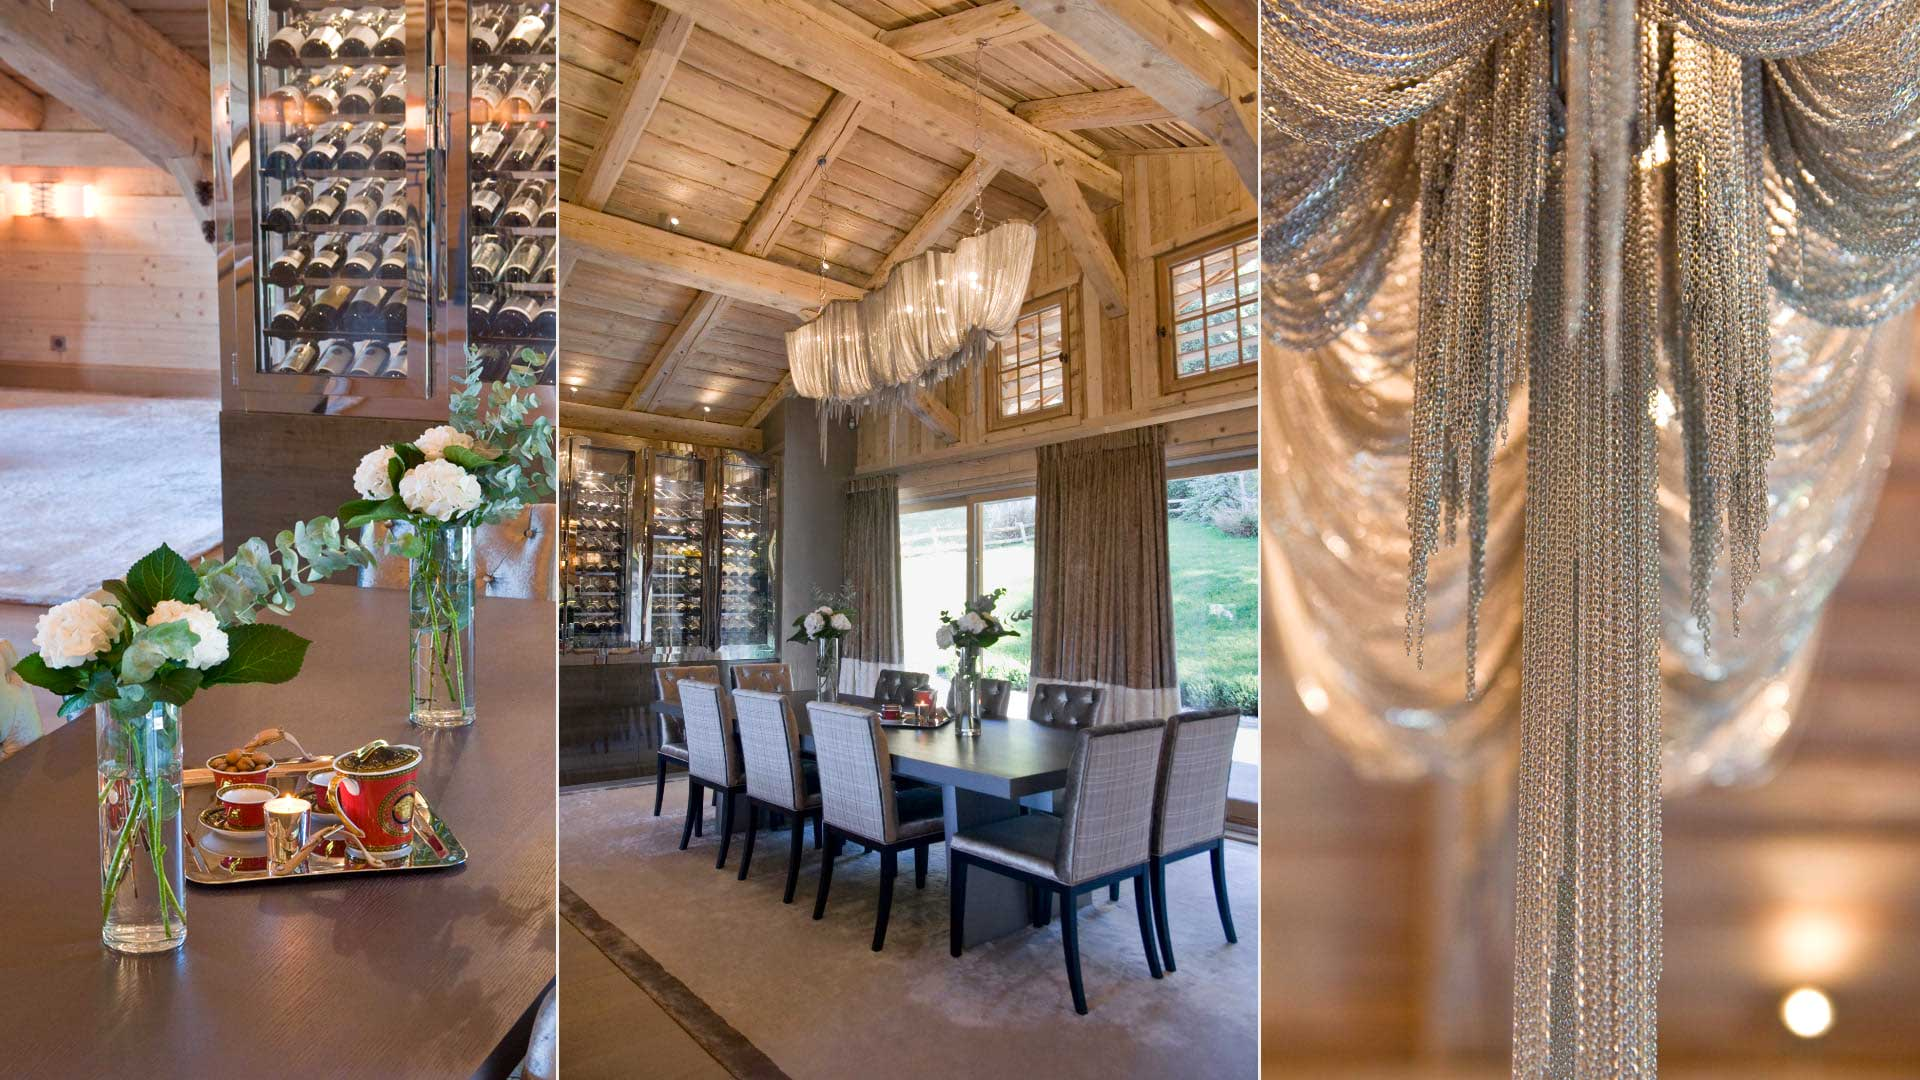 CHALET-FRENCH-ALPS-04-Dome-interior-design-Geneve-Suisse